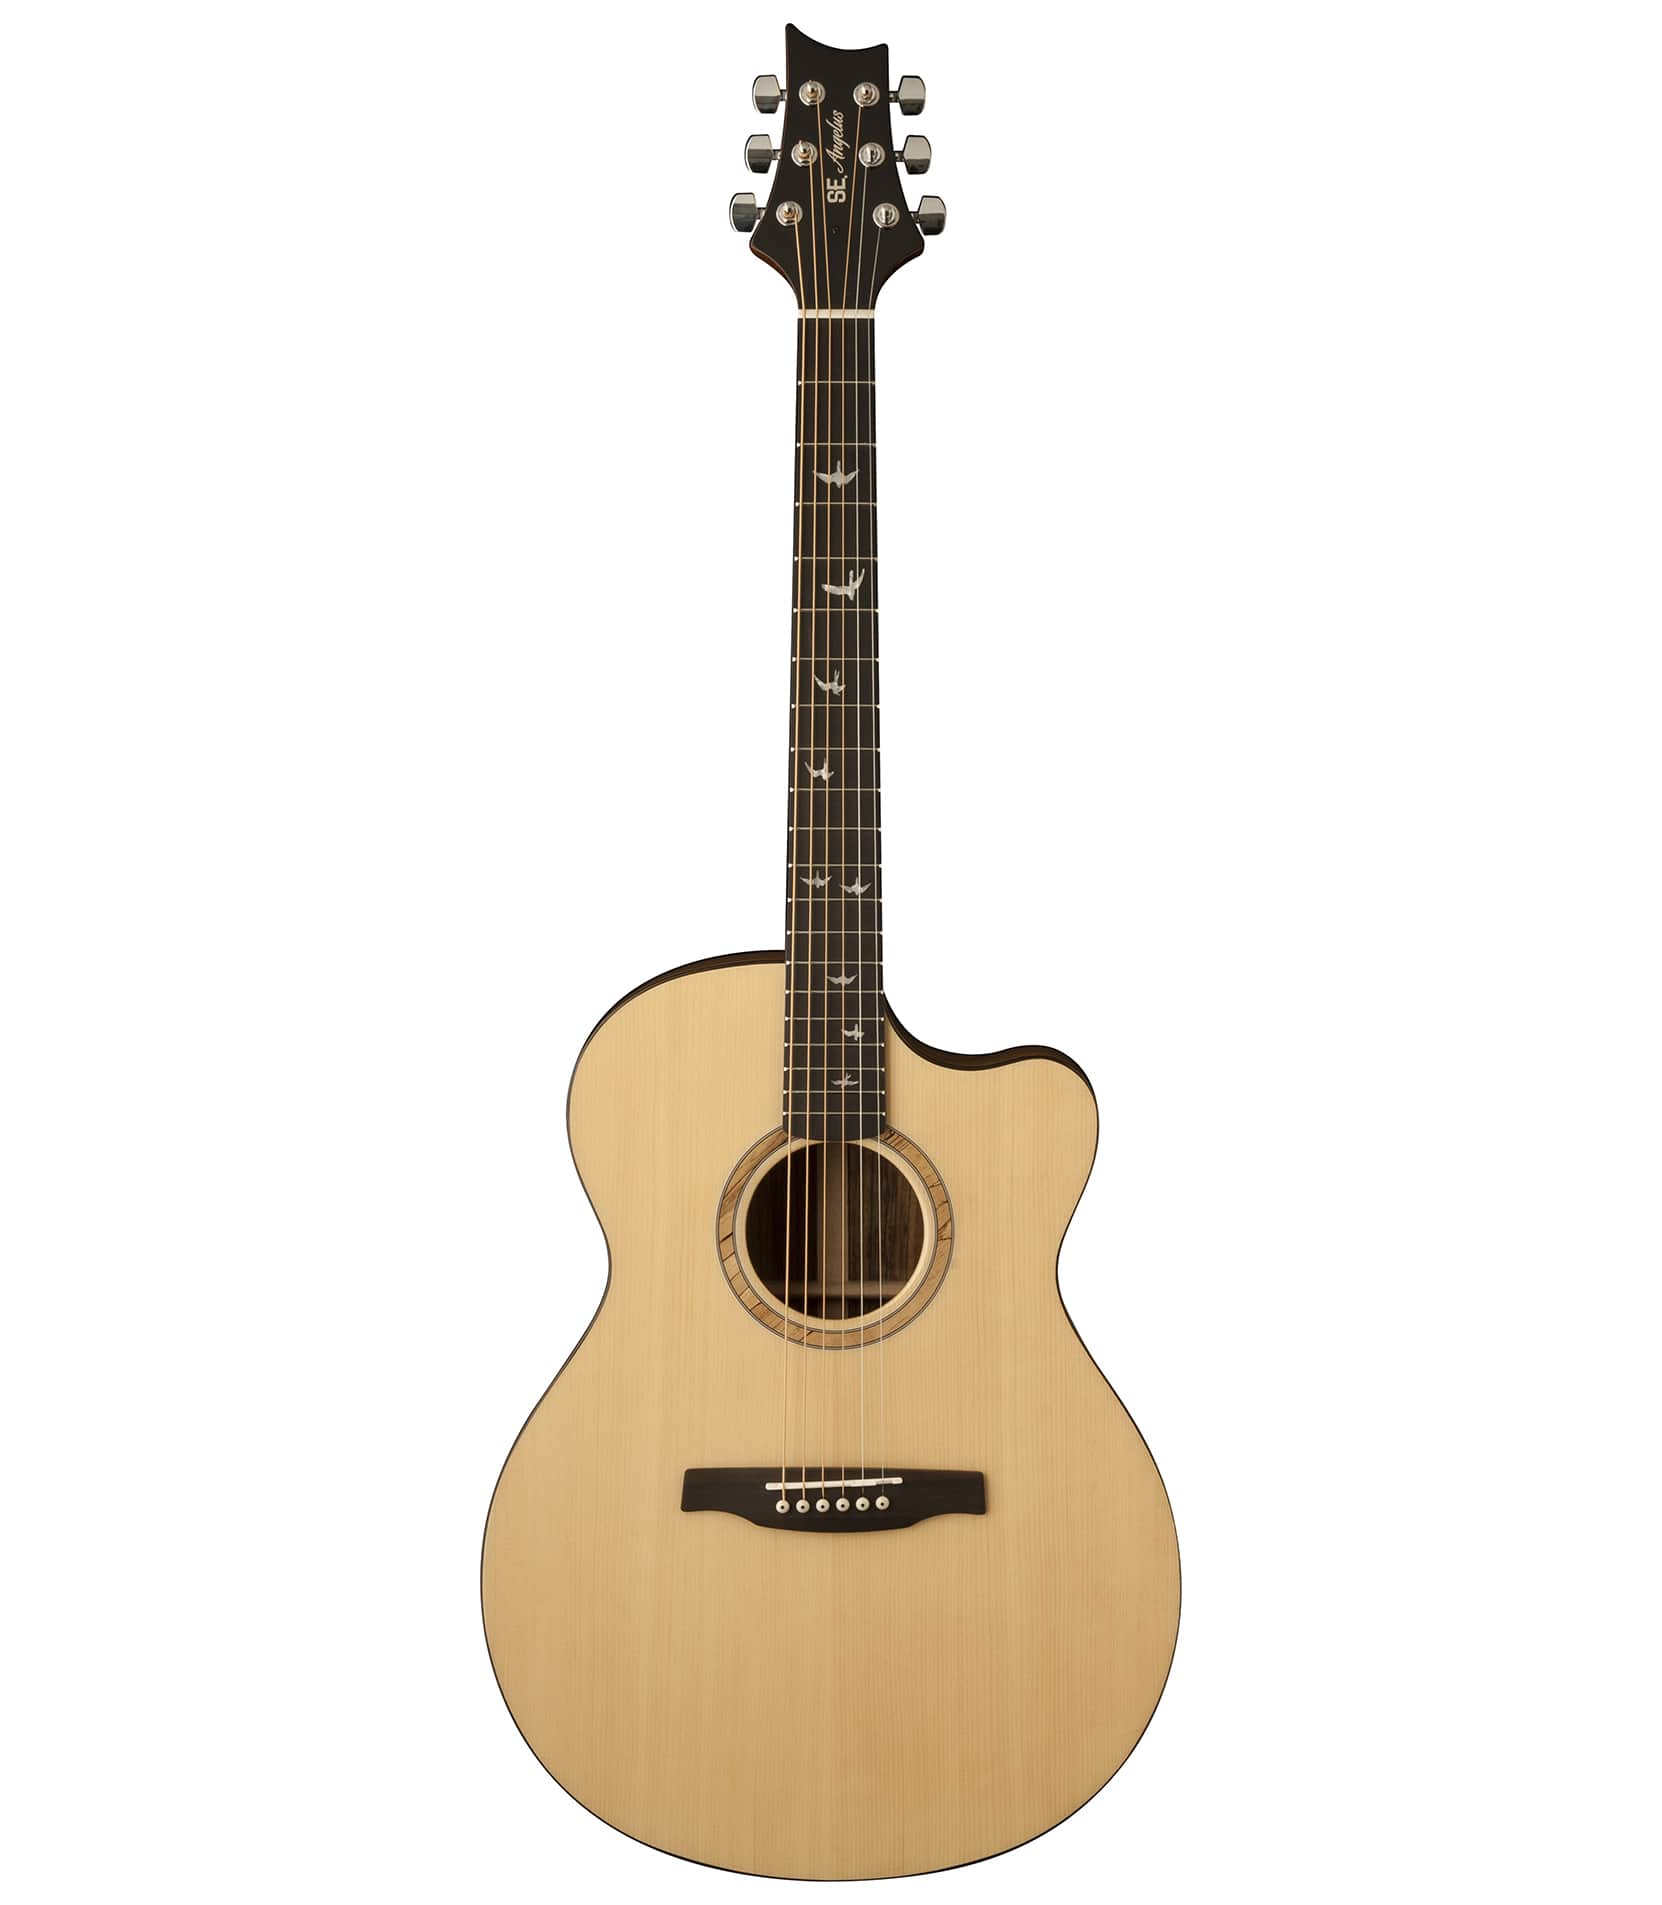 Buy prs SE Angelus Alex Lifeson Acoustic Guitar Natural Melody House